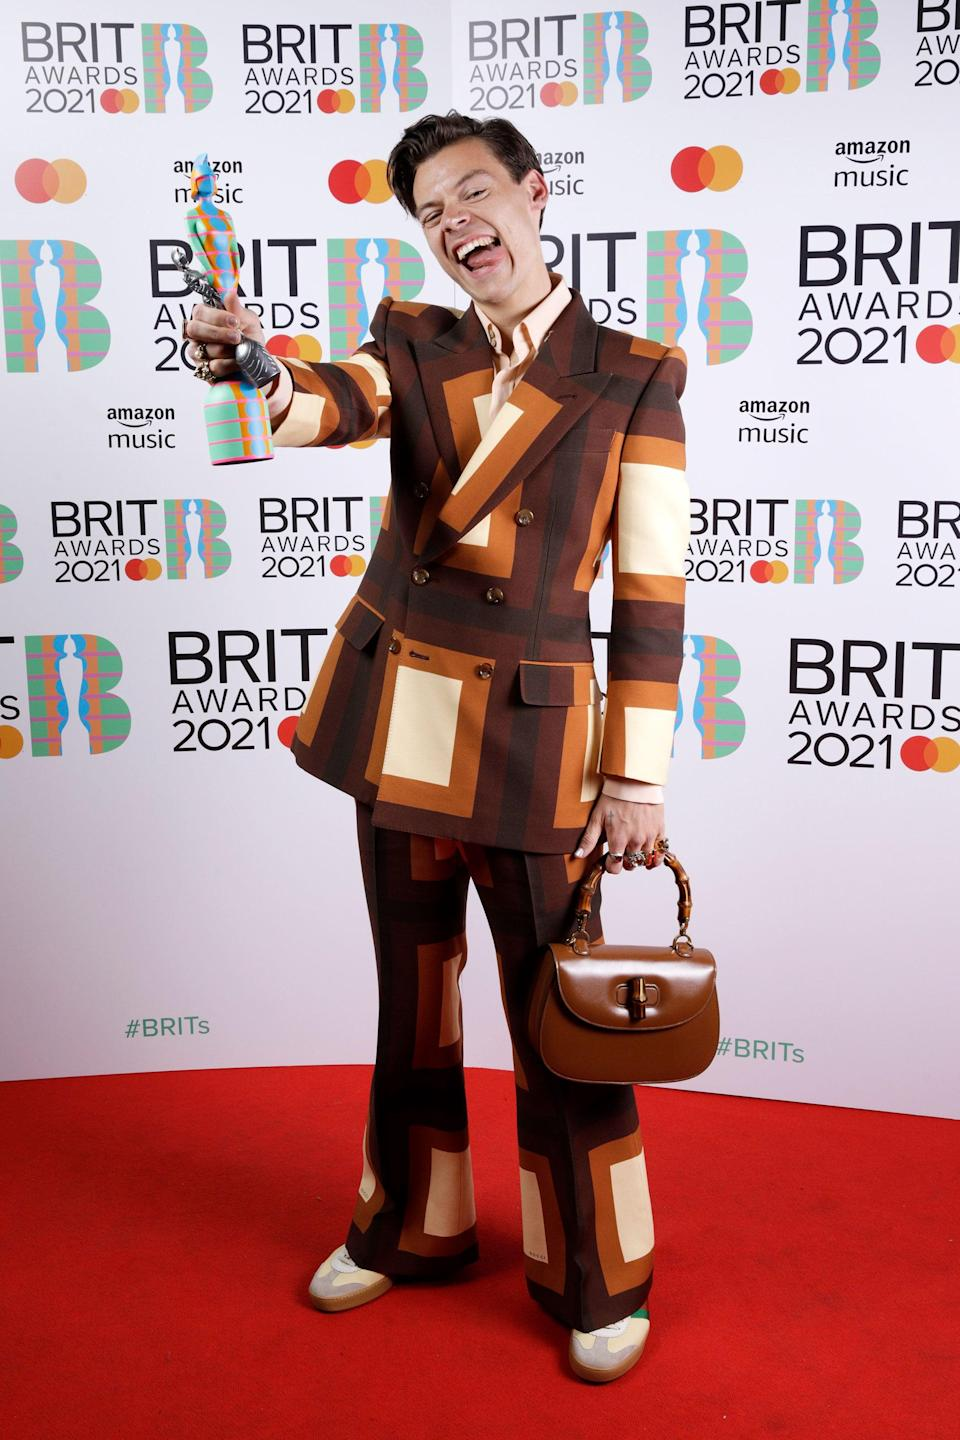 """<h2>Harry Styles in Gucci</h2><br>For once, we truly cannot find the words to describe how perfect this suit — pulled from <a href=""""https://www.refinery29.com/en-us/2021/04/10422889/gucci-balenciaga-aria-show-2021"""" rel=""""nofollow noopener"""" target=""""_blank"""" data-ylk=""""slk:Gucci's Aria show"""" class=""""link rapid-noclick-resp"""">Gucci's Aria show</a> — is on Harry Styles. Big props to his stylist Harry Lambert. <span class=""""copyright"""">Photo: JMEnternational/Getty Images.</span>"""